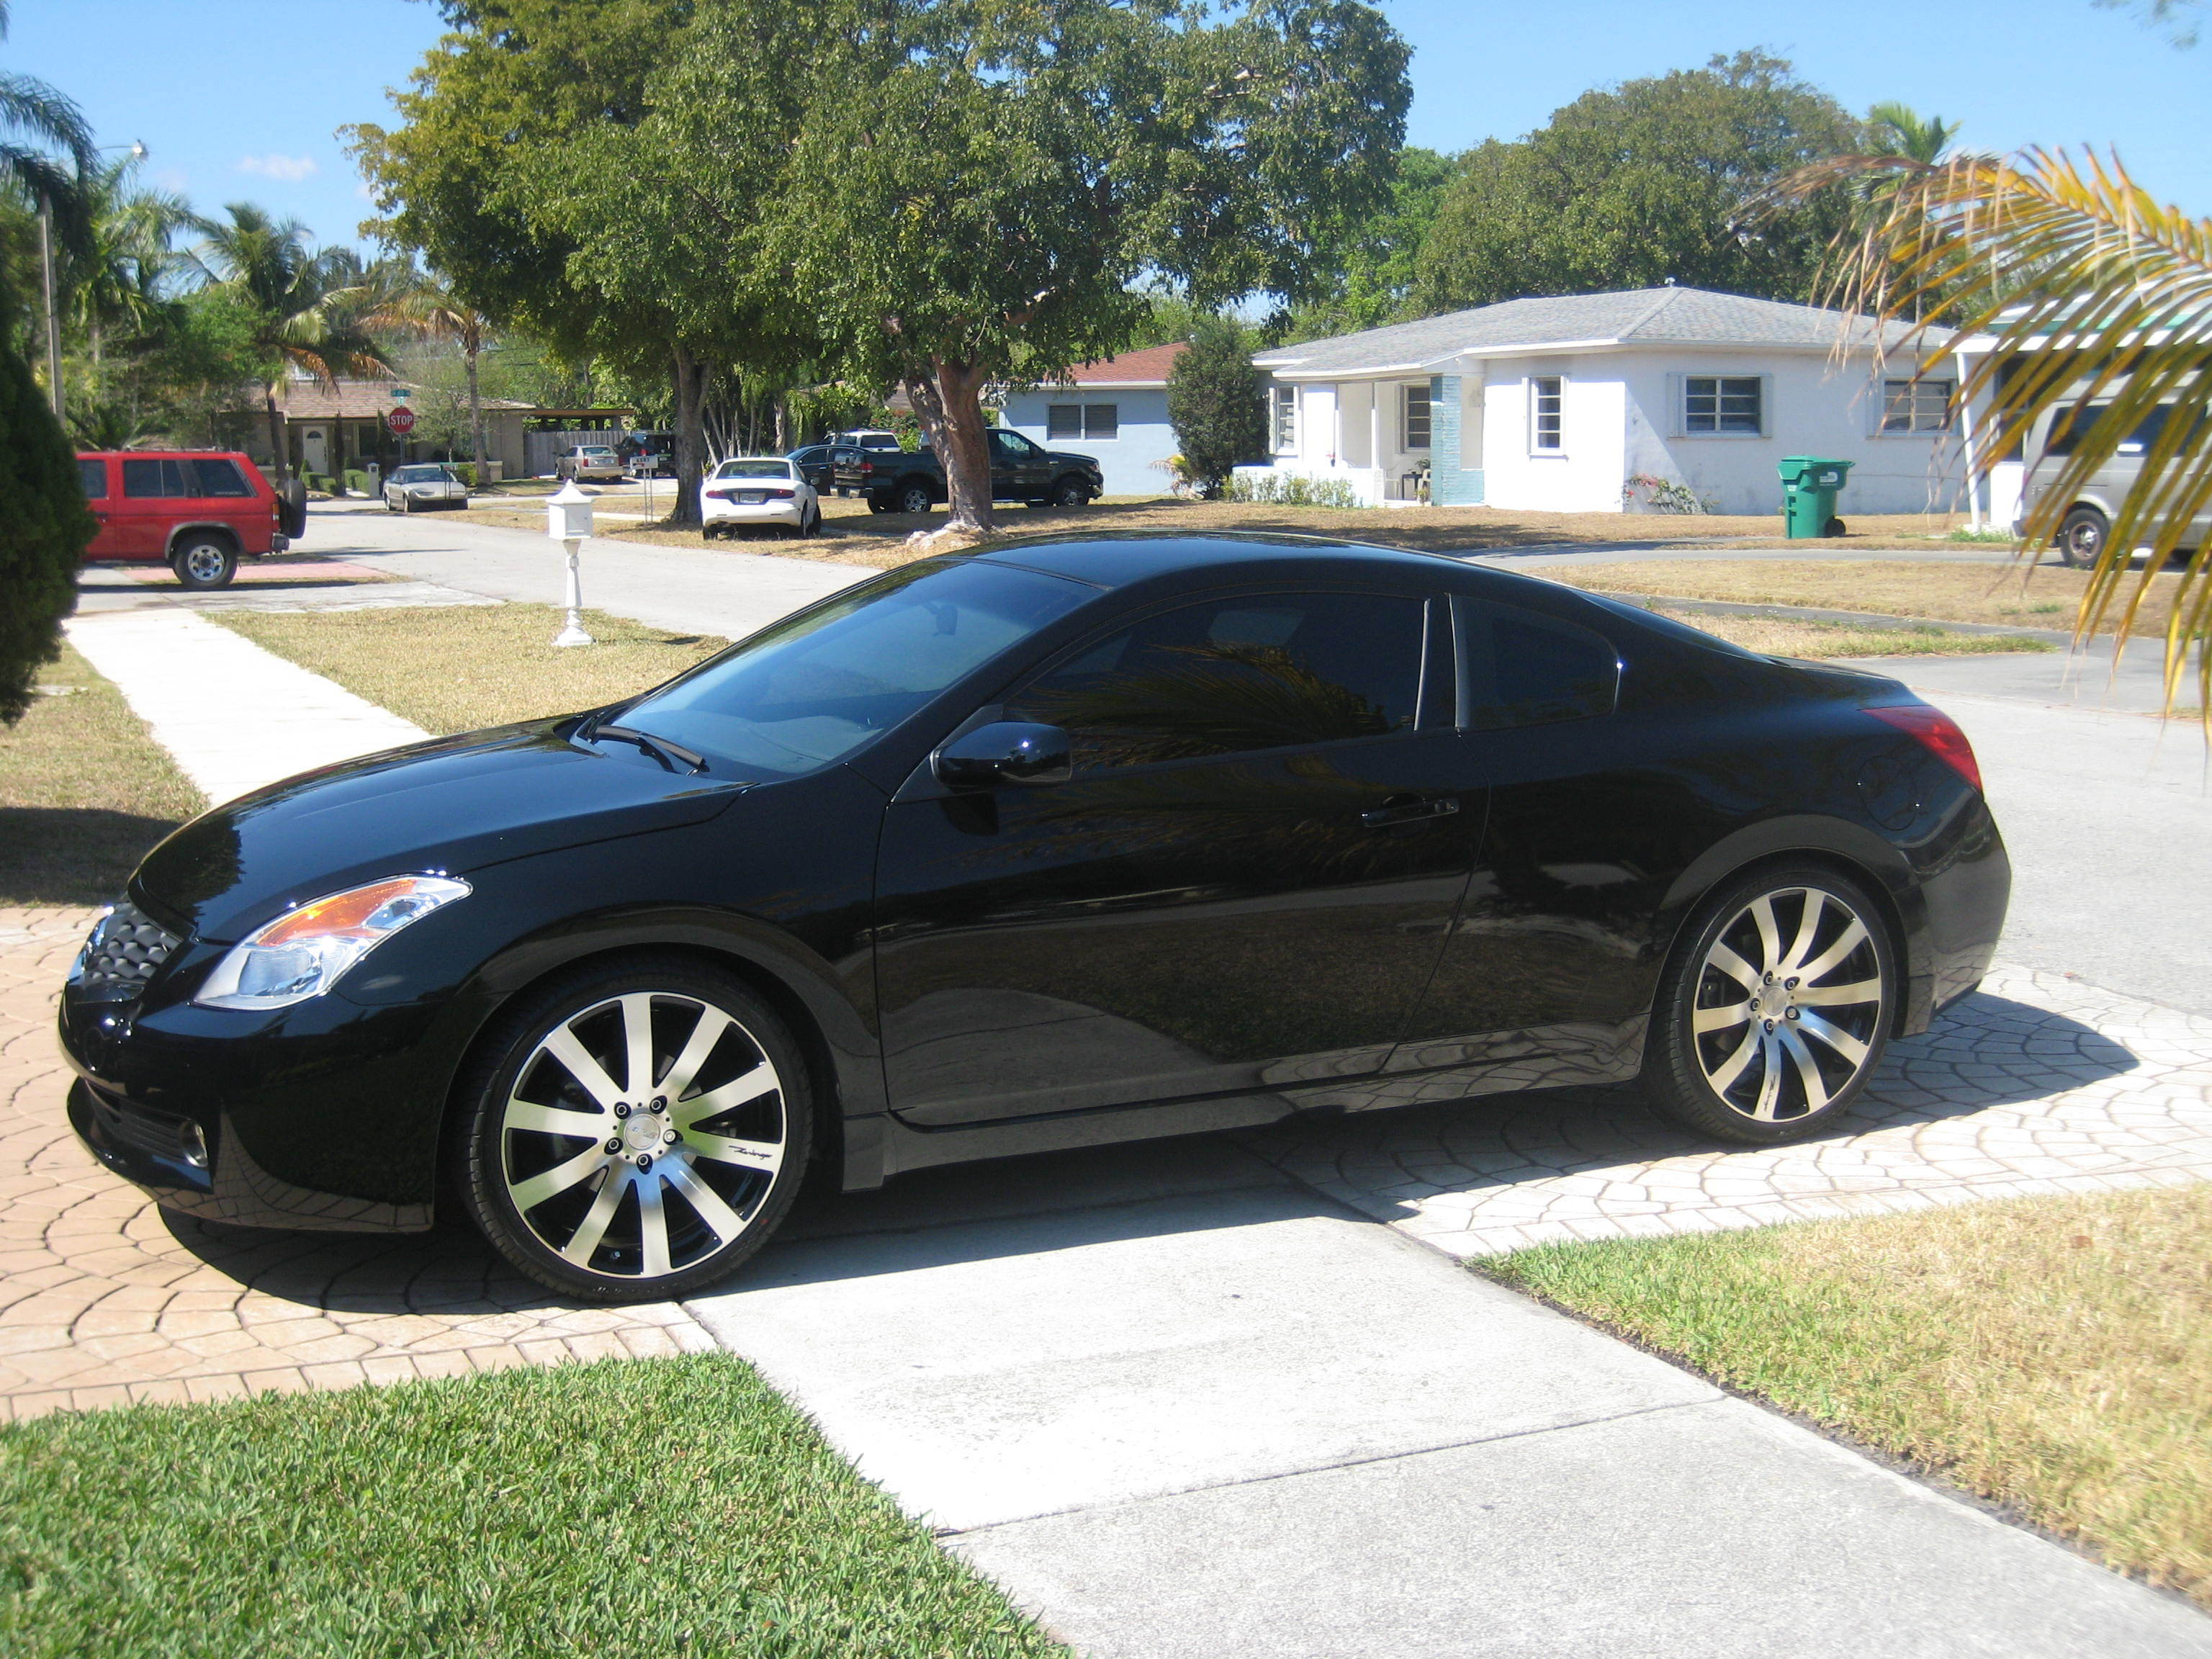 2009 Nissan Maxima Rims roach31121 2008 Nissan Altima Specs, Photos, Modification ...